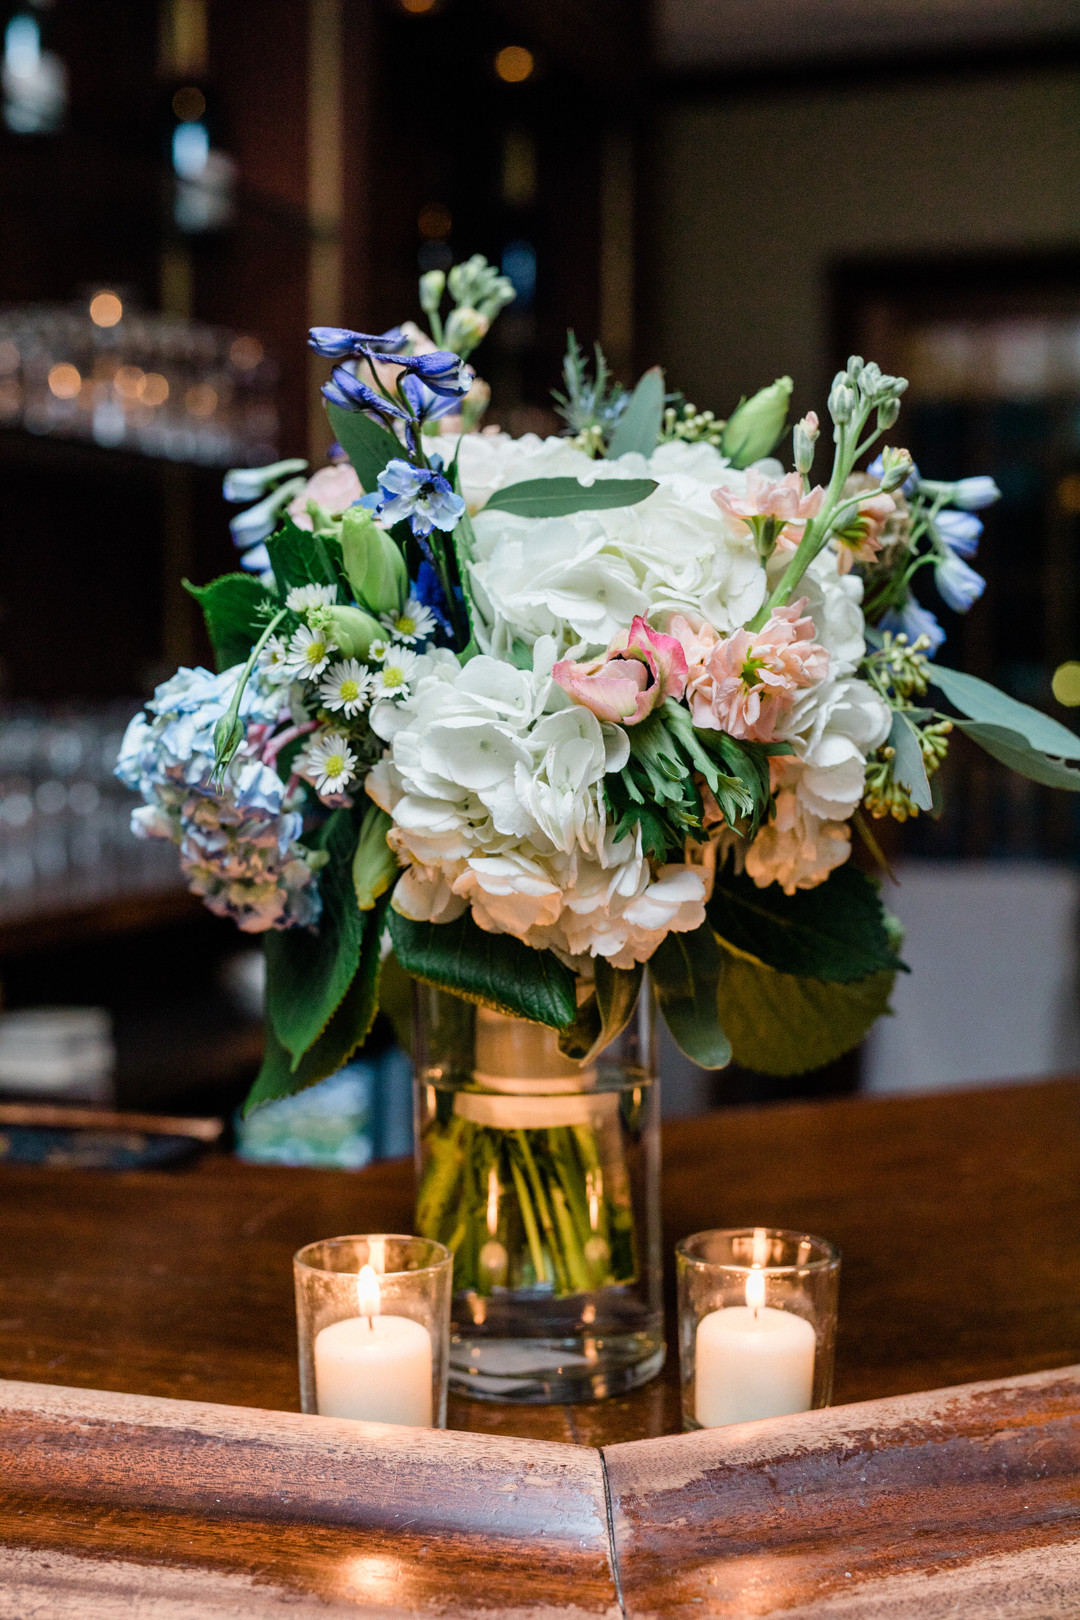 Sheorn_Snijders_CatherineAnnPhotography_catherineannphotographywedding31018carolineeric471_big.jpg